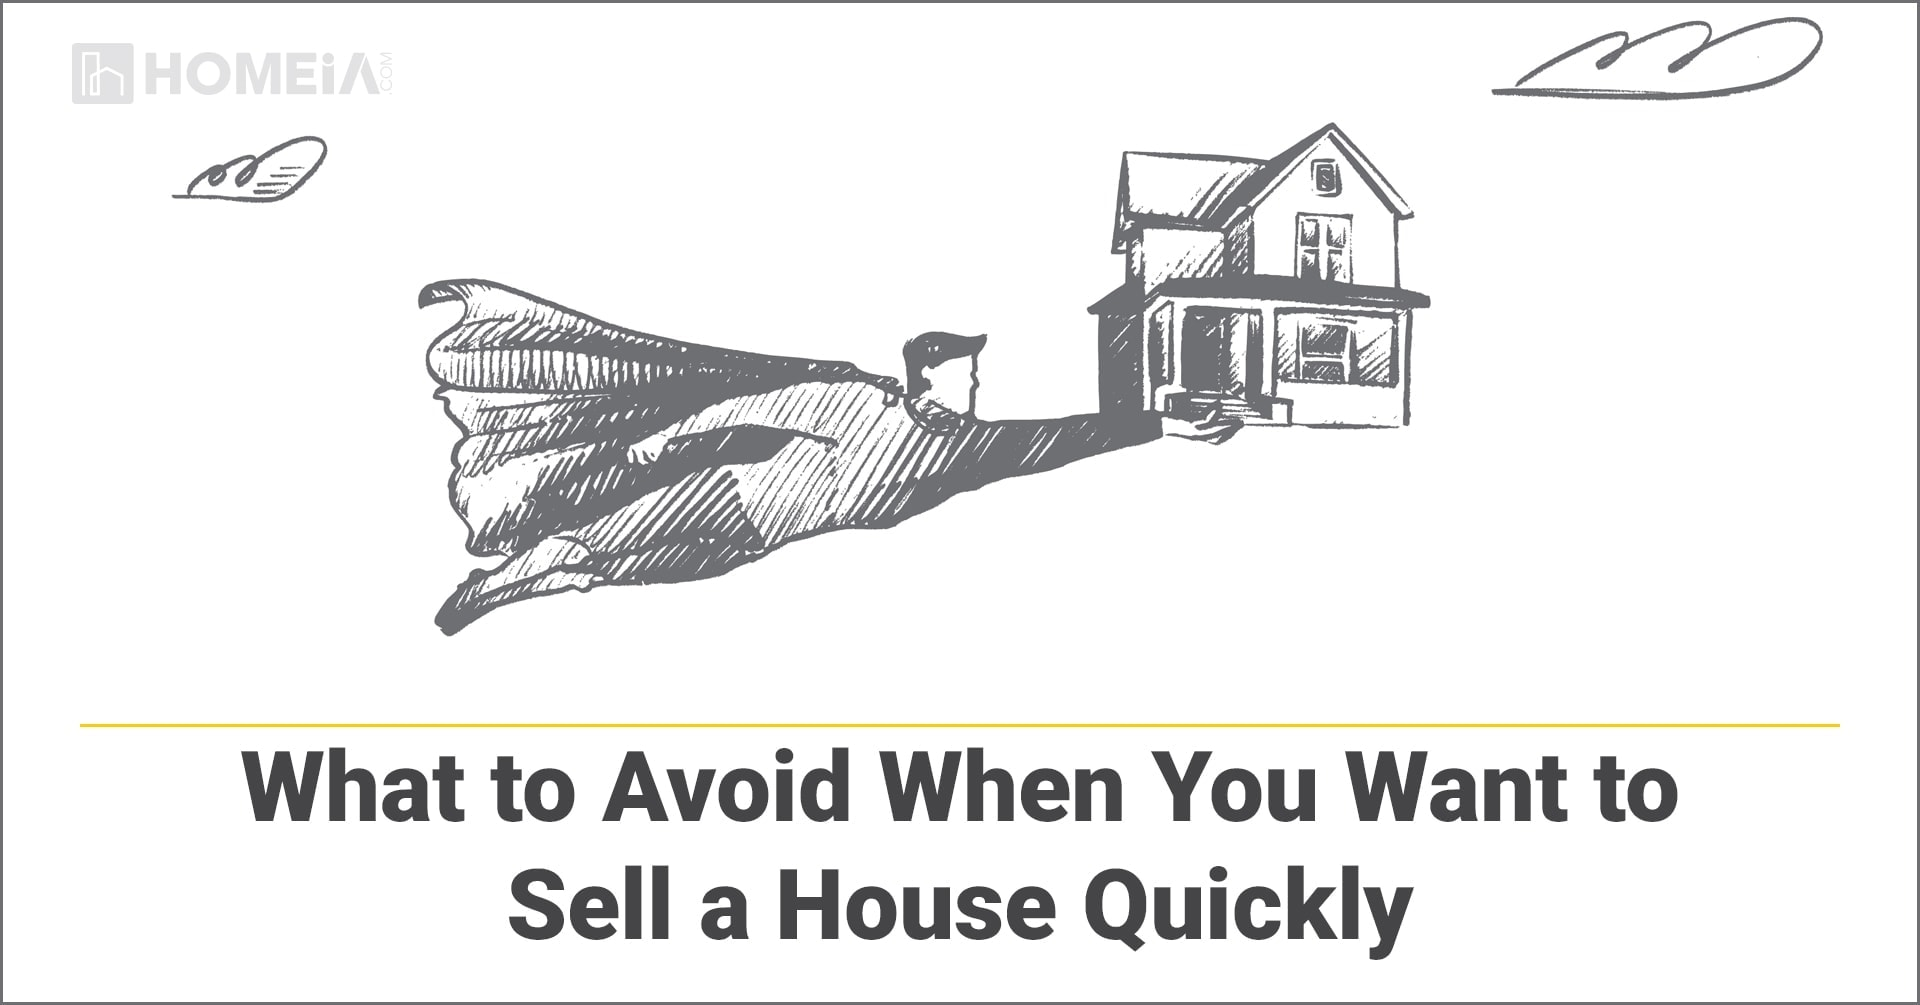 What to Avoid When You Want to Sell a House Quickly